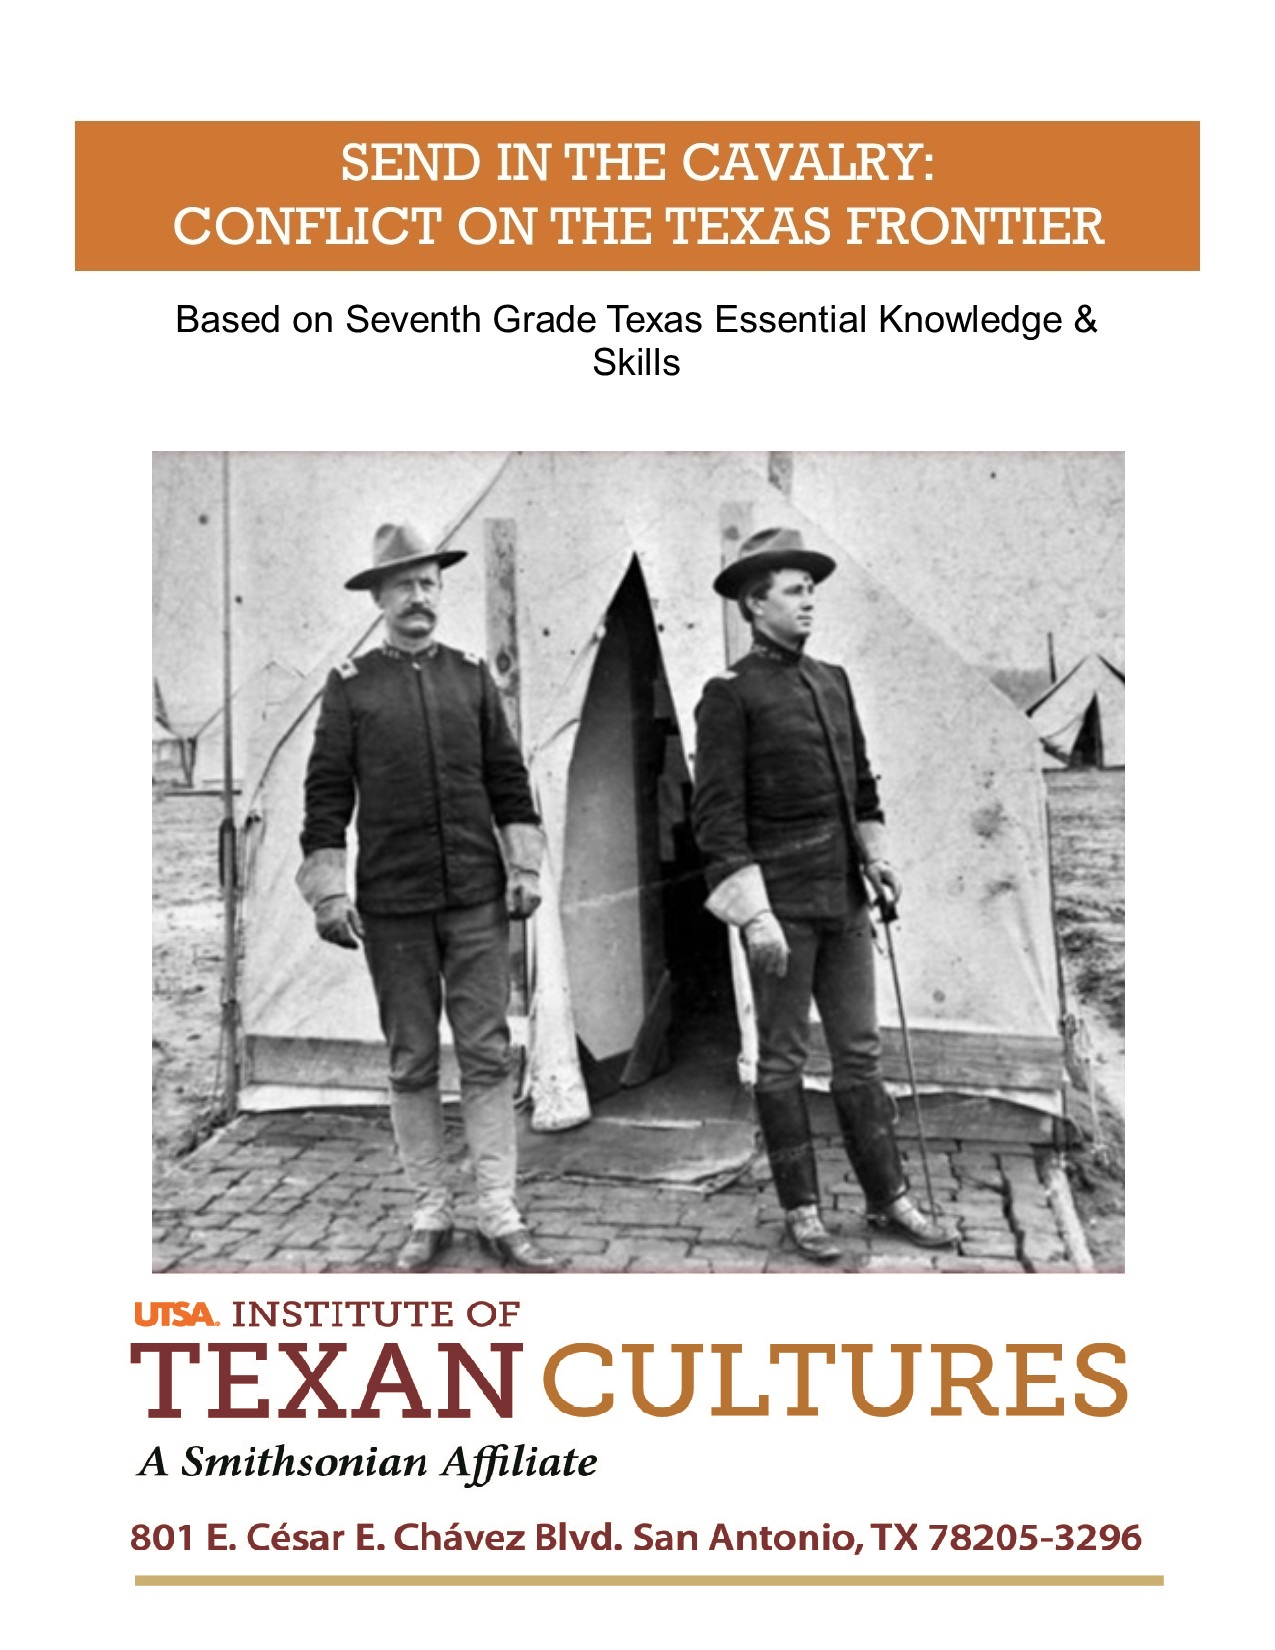 Send in the Cavalry: Conflict on the Texas Frontier | UTSA Institute Of Texan Cultures